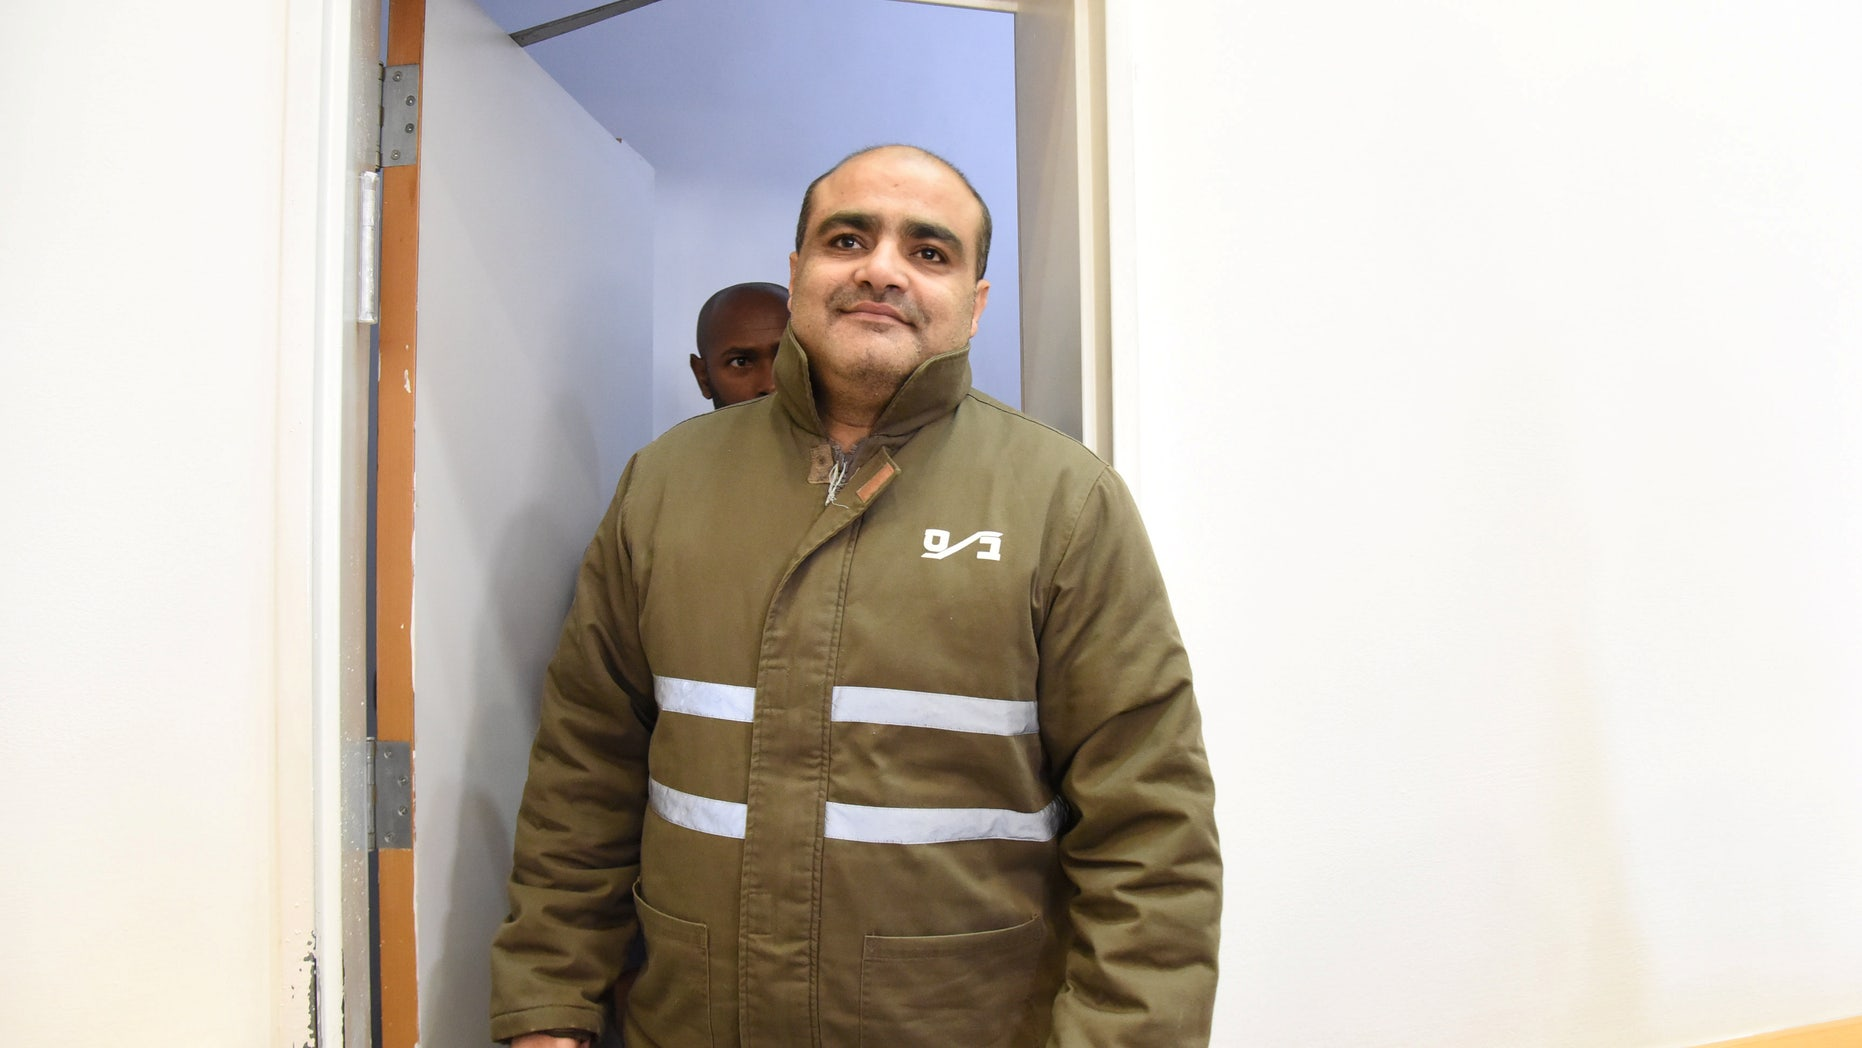 Mohammed el-Halabi in a courtroom in southern Israel.